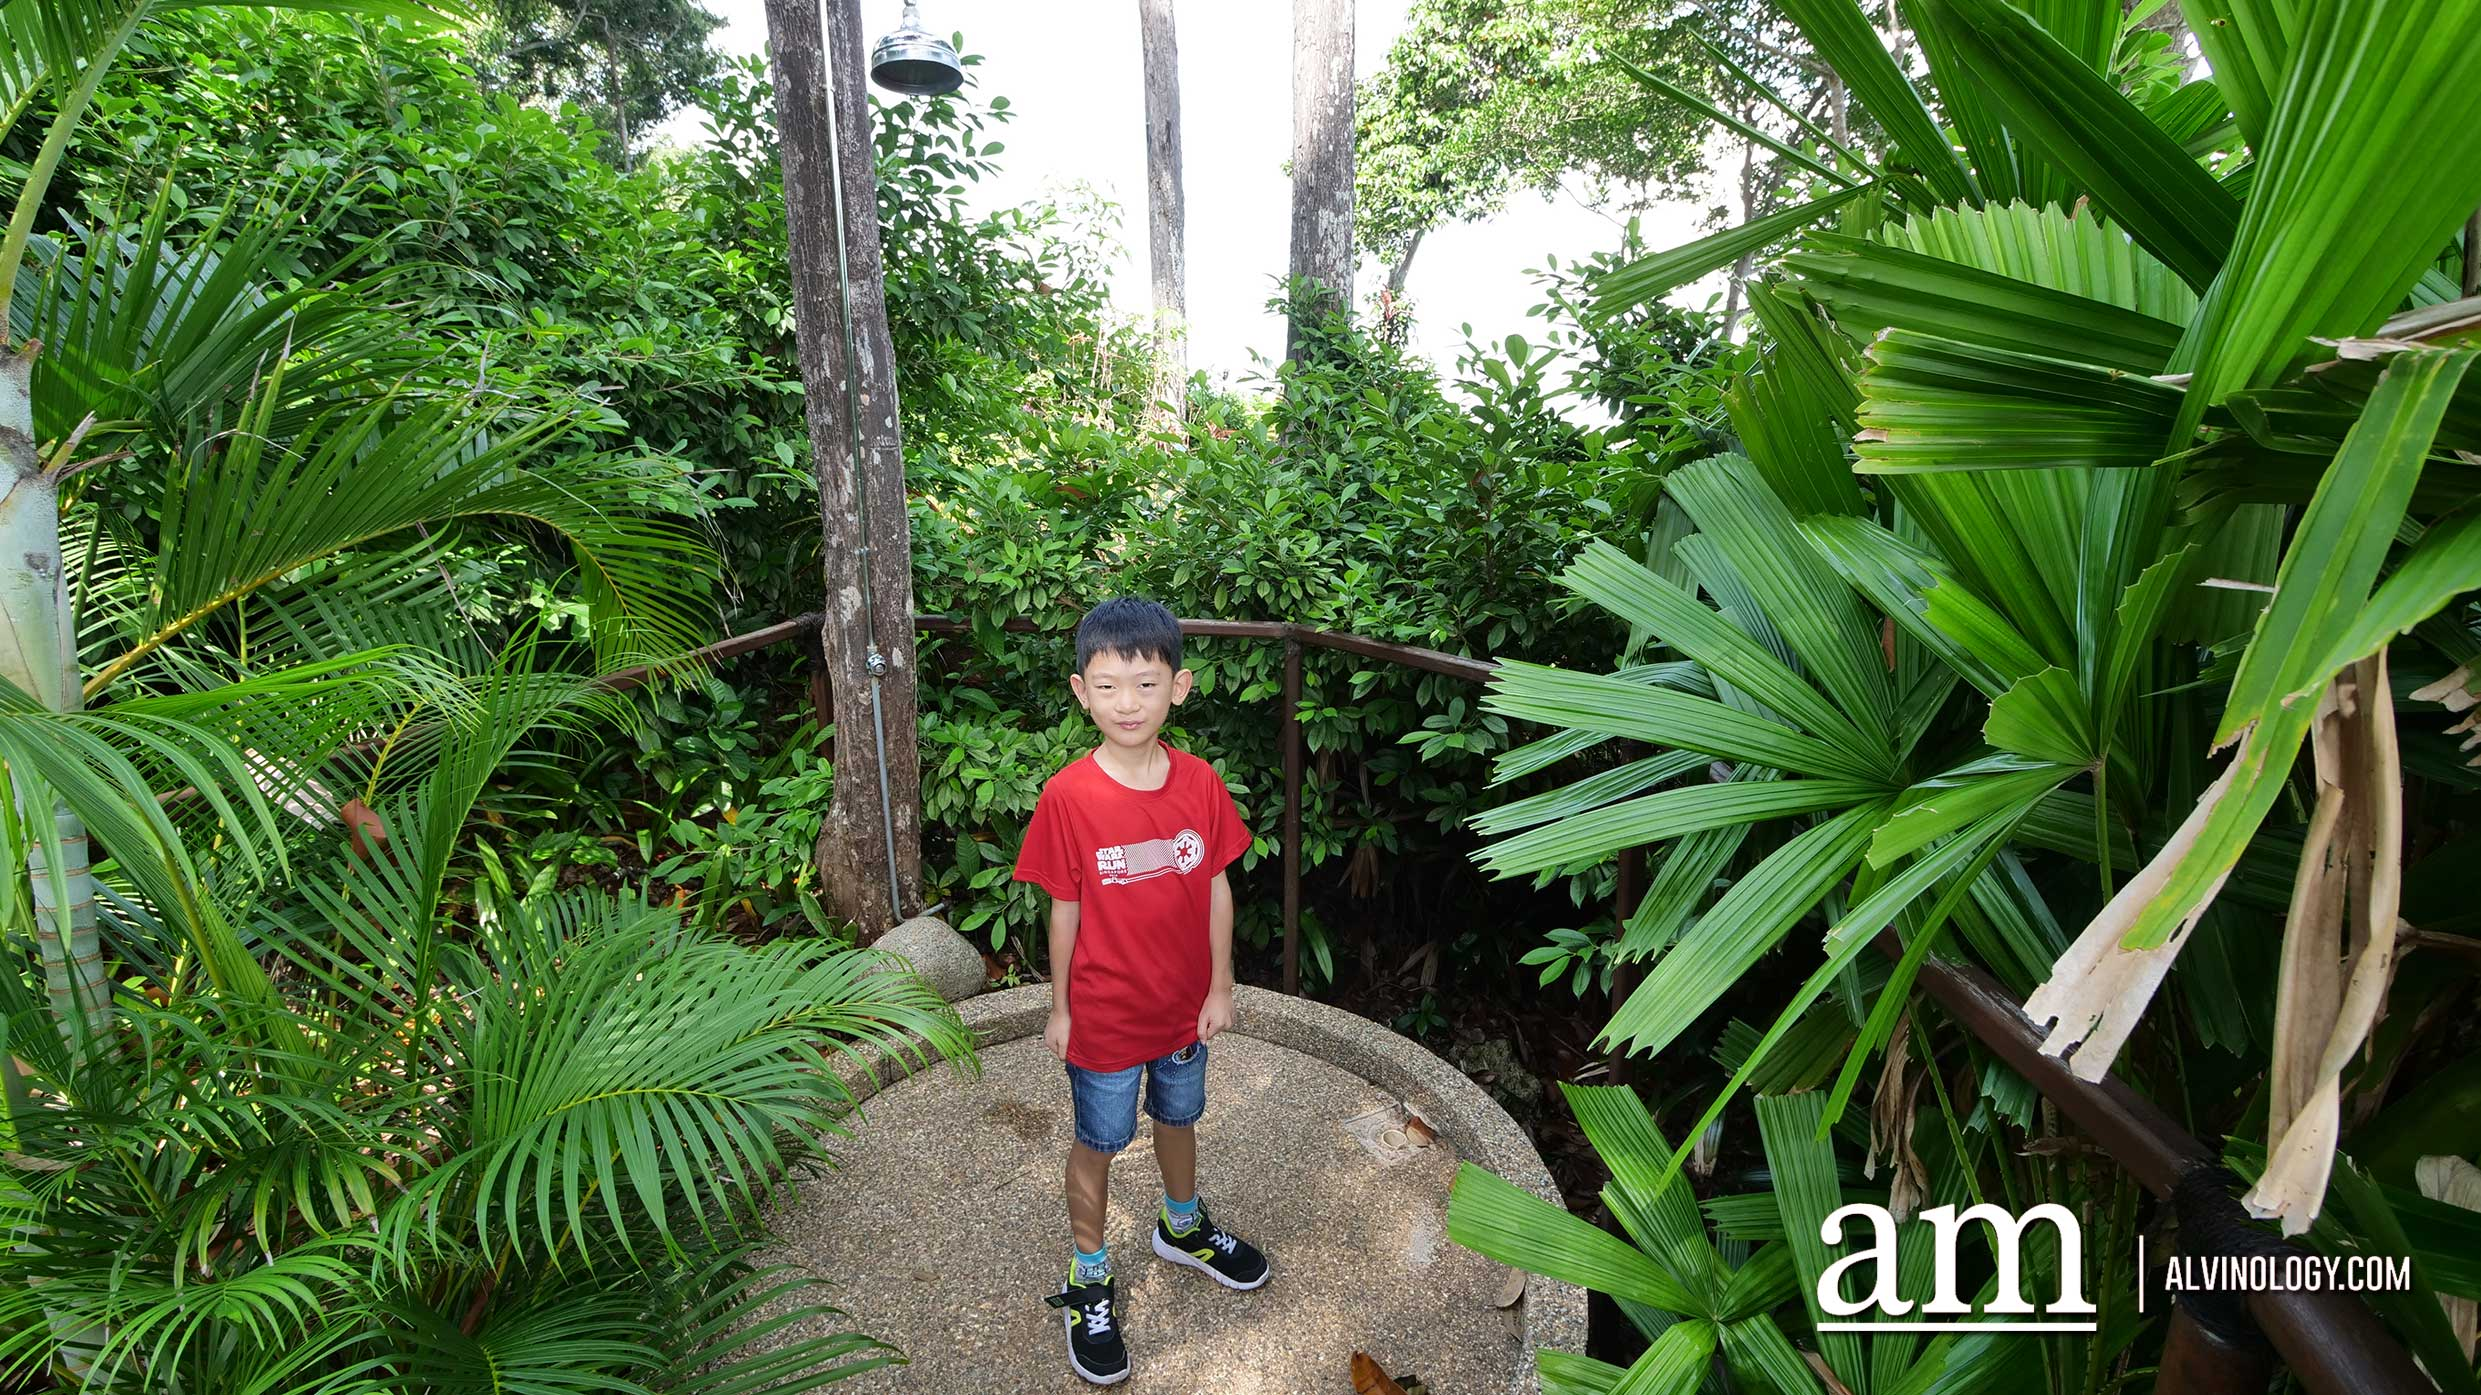 Angsana Bintan debuts new Rangers' Club for kids and Live for Family package for family travels - Alvinology